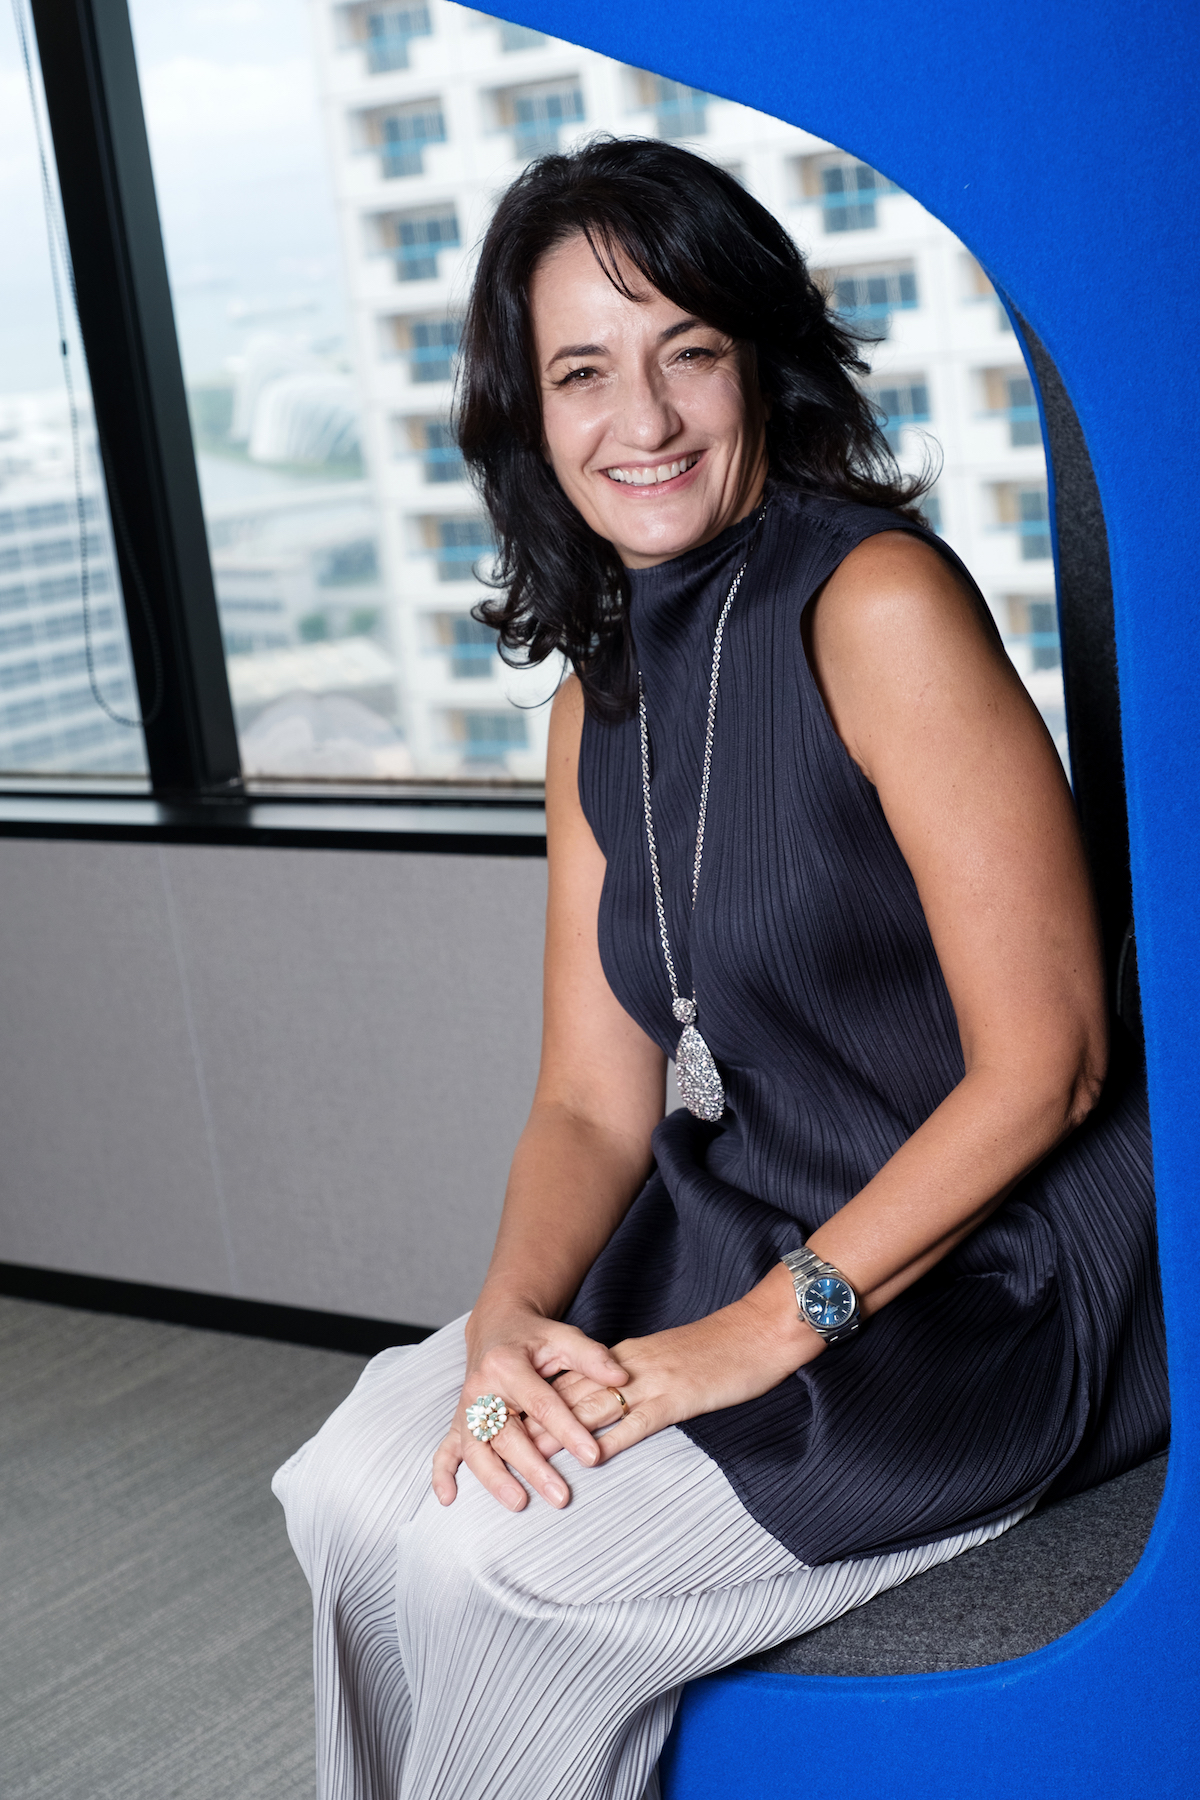 Anna Di Silverio, President of Growth Markets of Avanade Asia Pacific